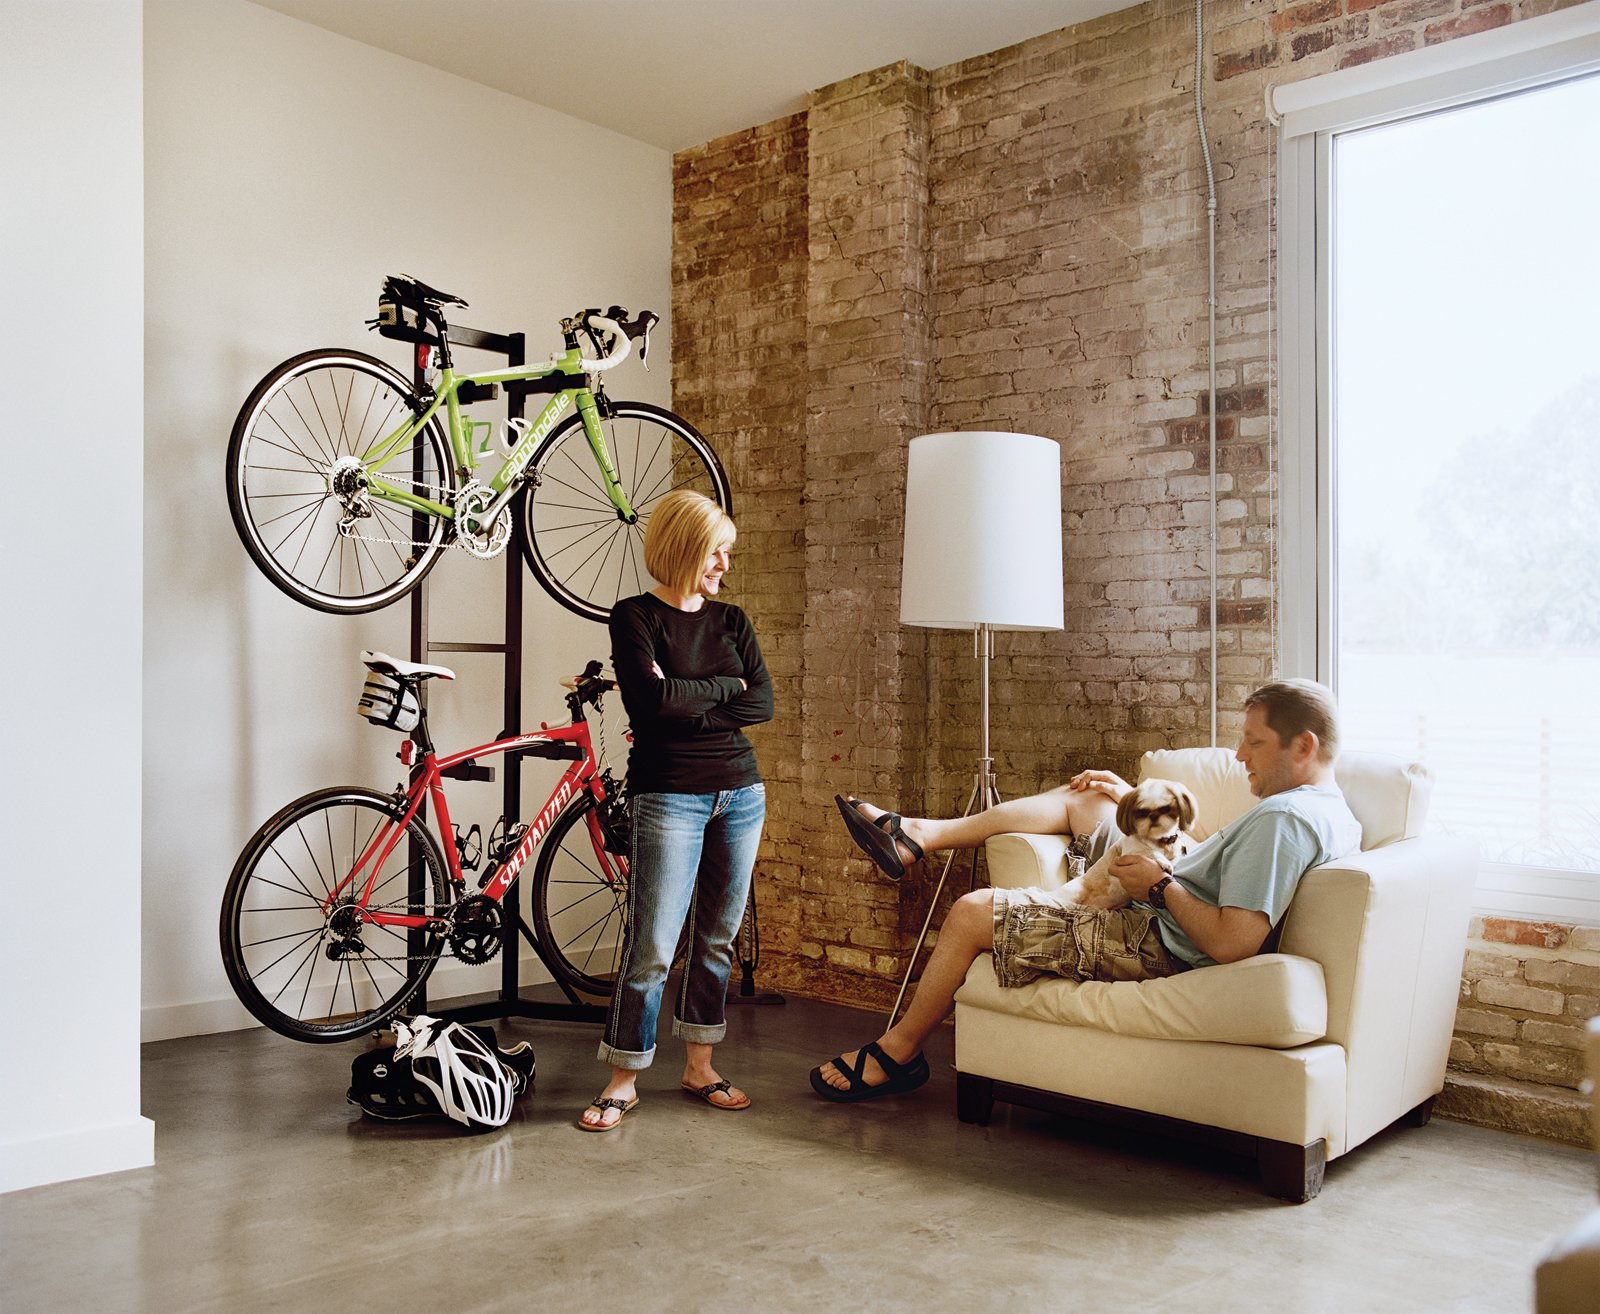 """Sofa, Storage Room, and Shelves Storage Type Loft B tenants Melissa and Keith Bishop downsized from a 3,000 square foot space to a cozy 720 square foot loft. """"We downsized our lives,"""" Melissa says. """"We streamlined.""""  Photo 8 of 13 in Building Community from Melissa and Keith Bishop, Loft B"""